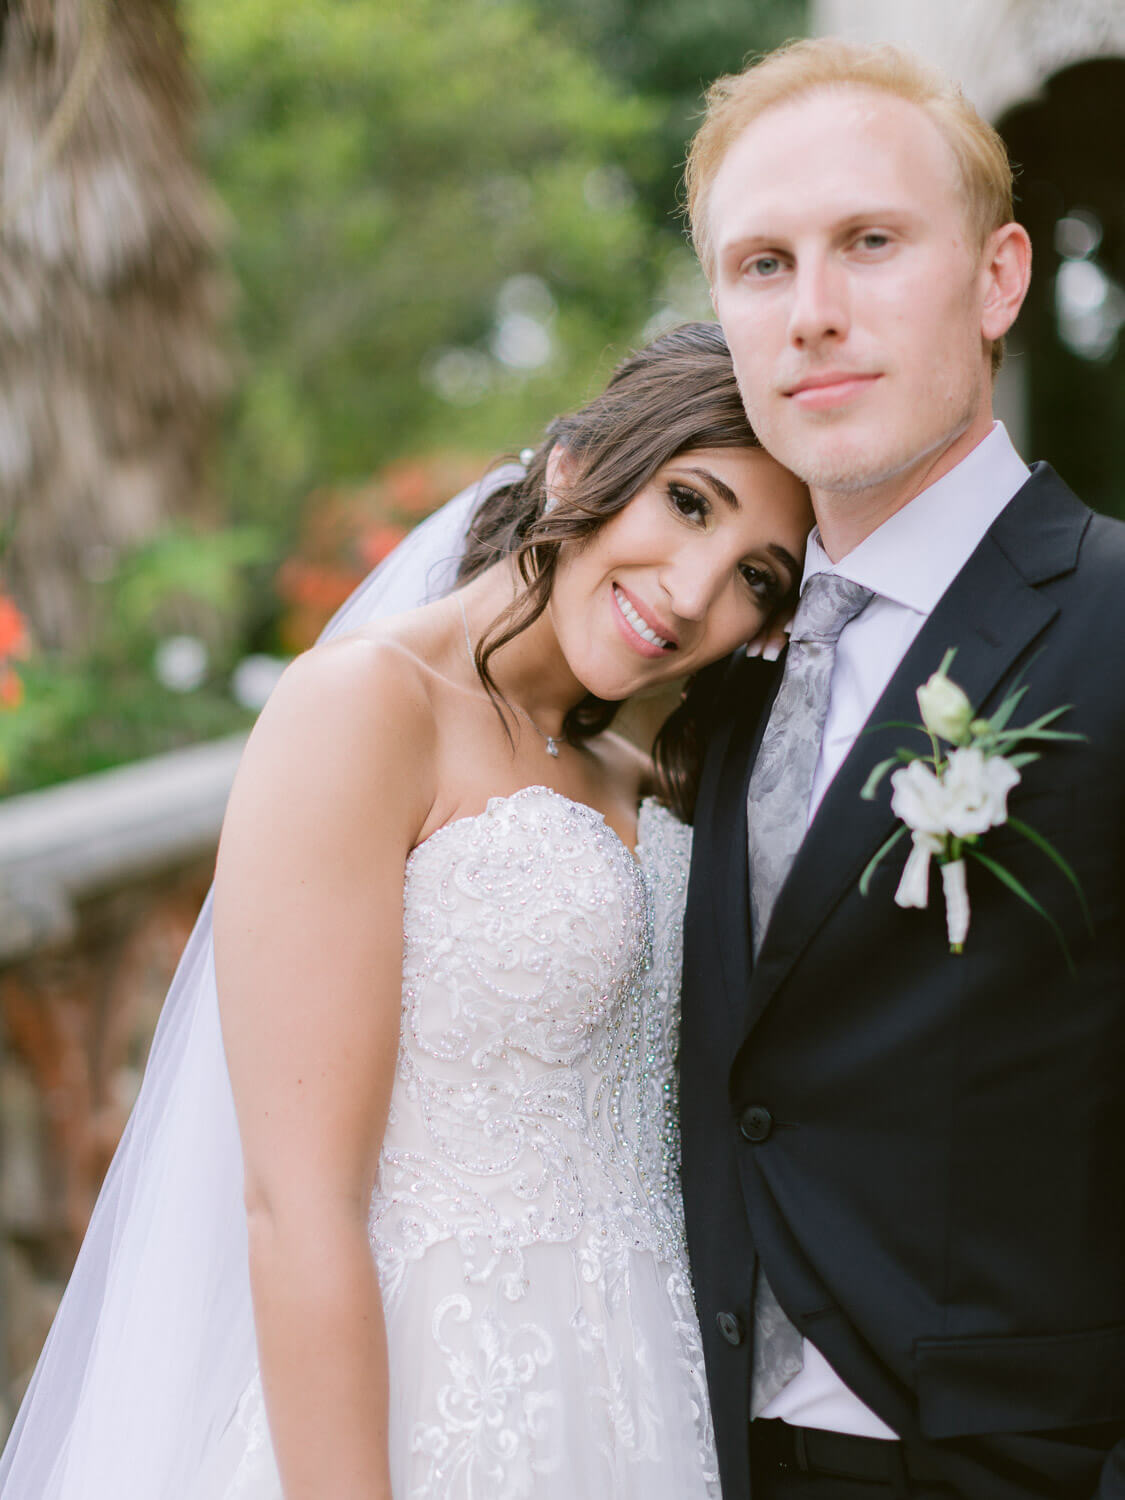 endearing wedding couple portrait in Monserrate Palace Sintra by Portugal Wedding Photographer